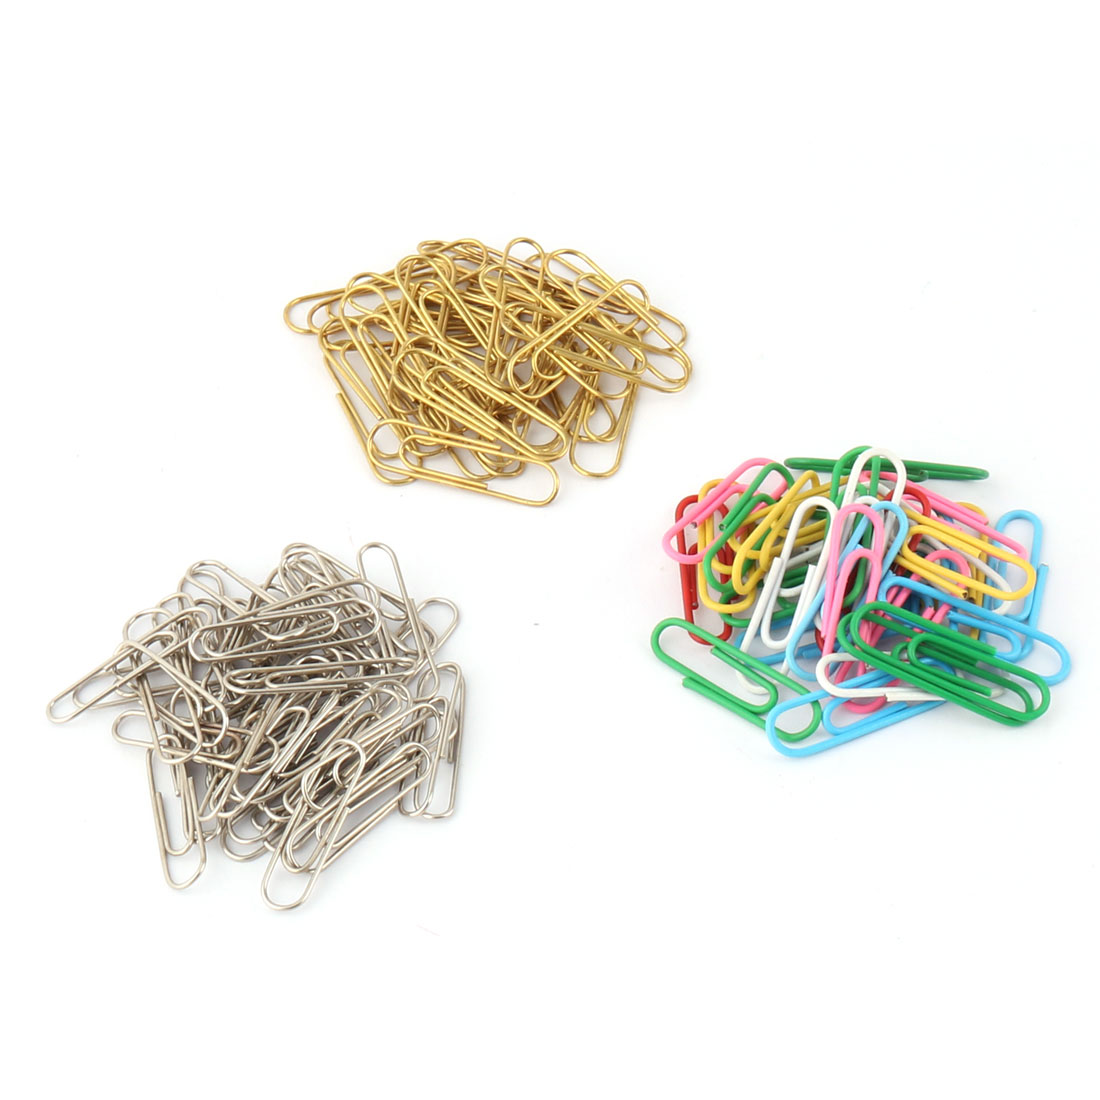 Home Office School Stationery Docunments Note Paper Clip Organizer Holder Muticolor 120pcs in One